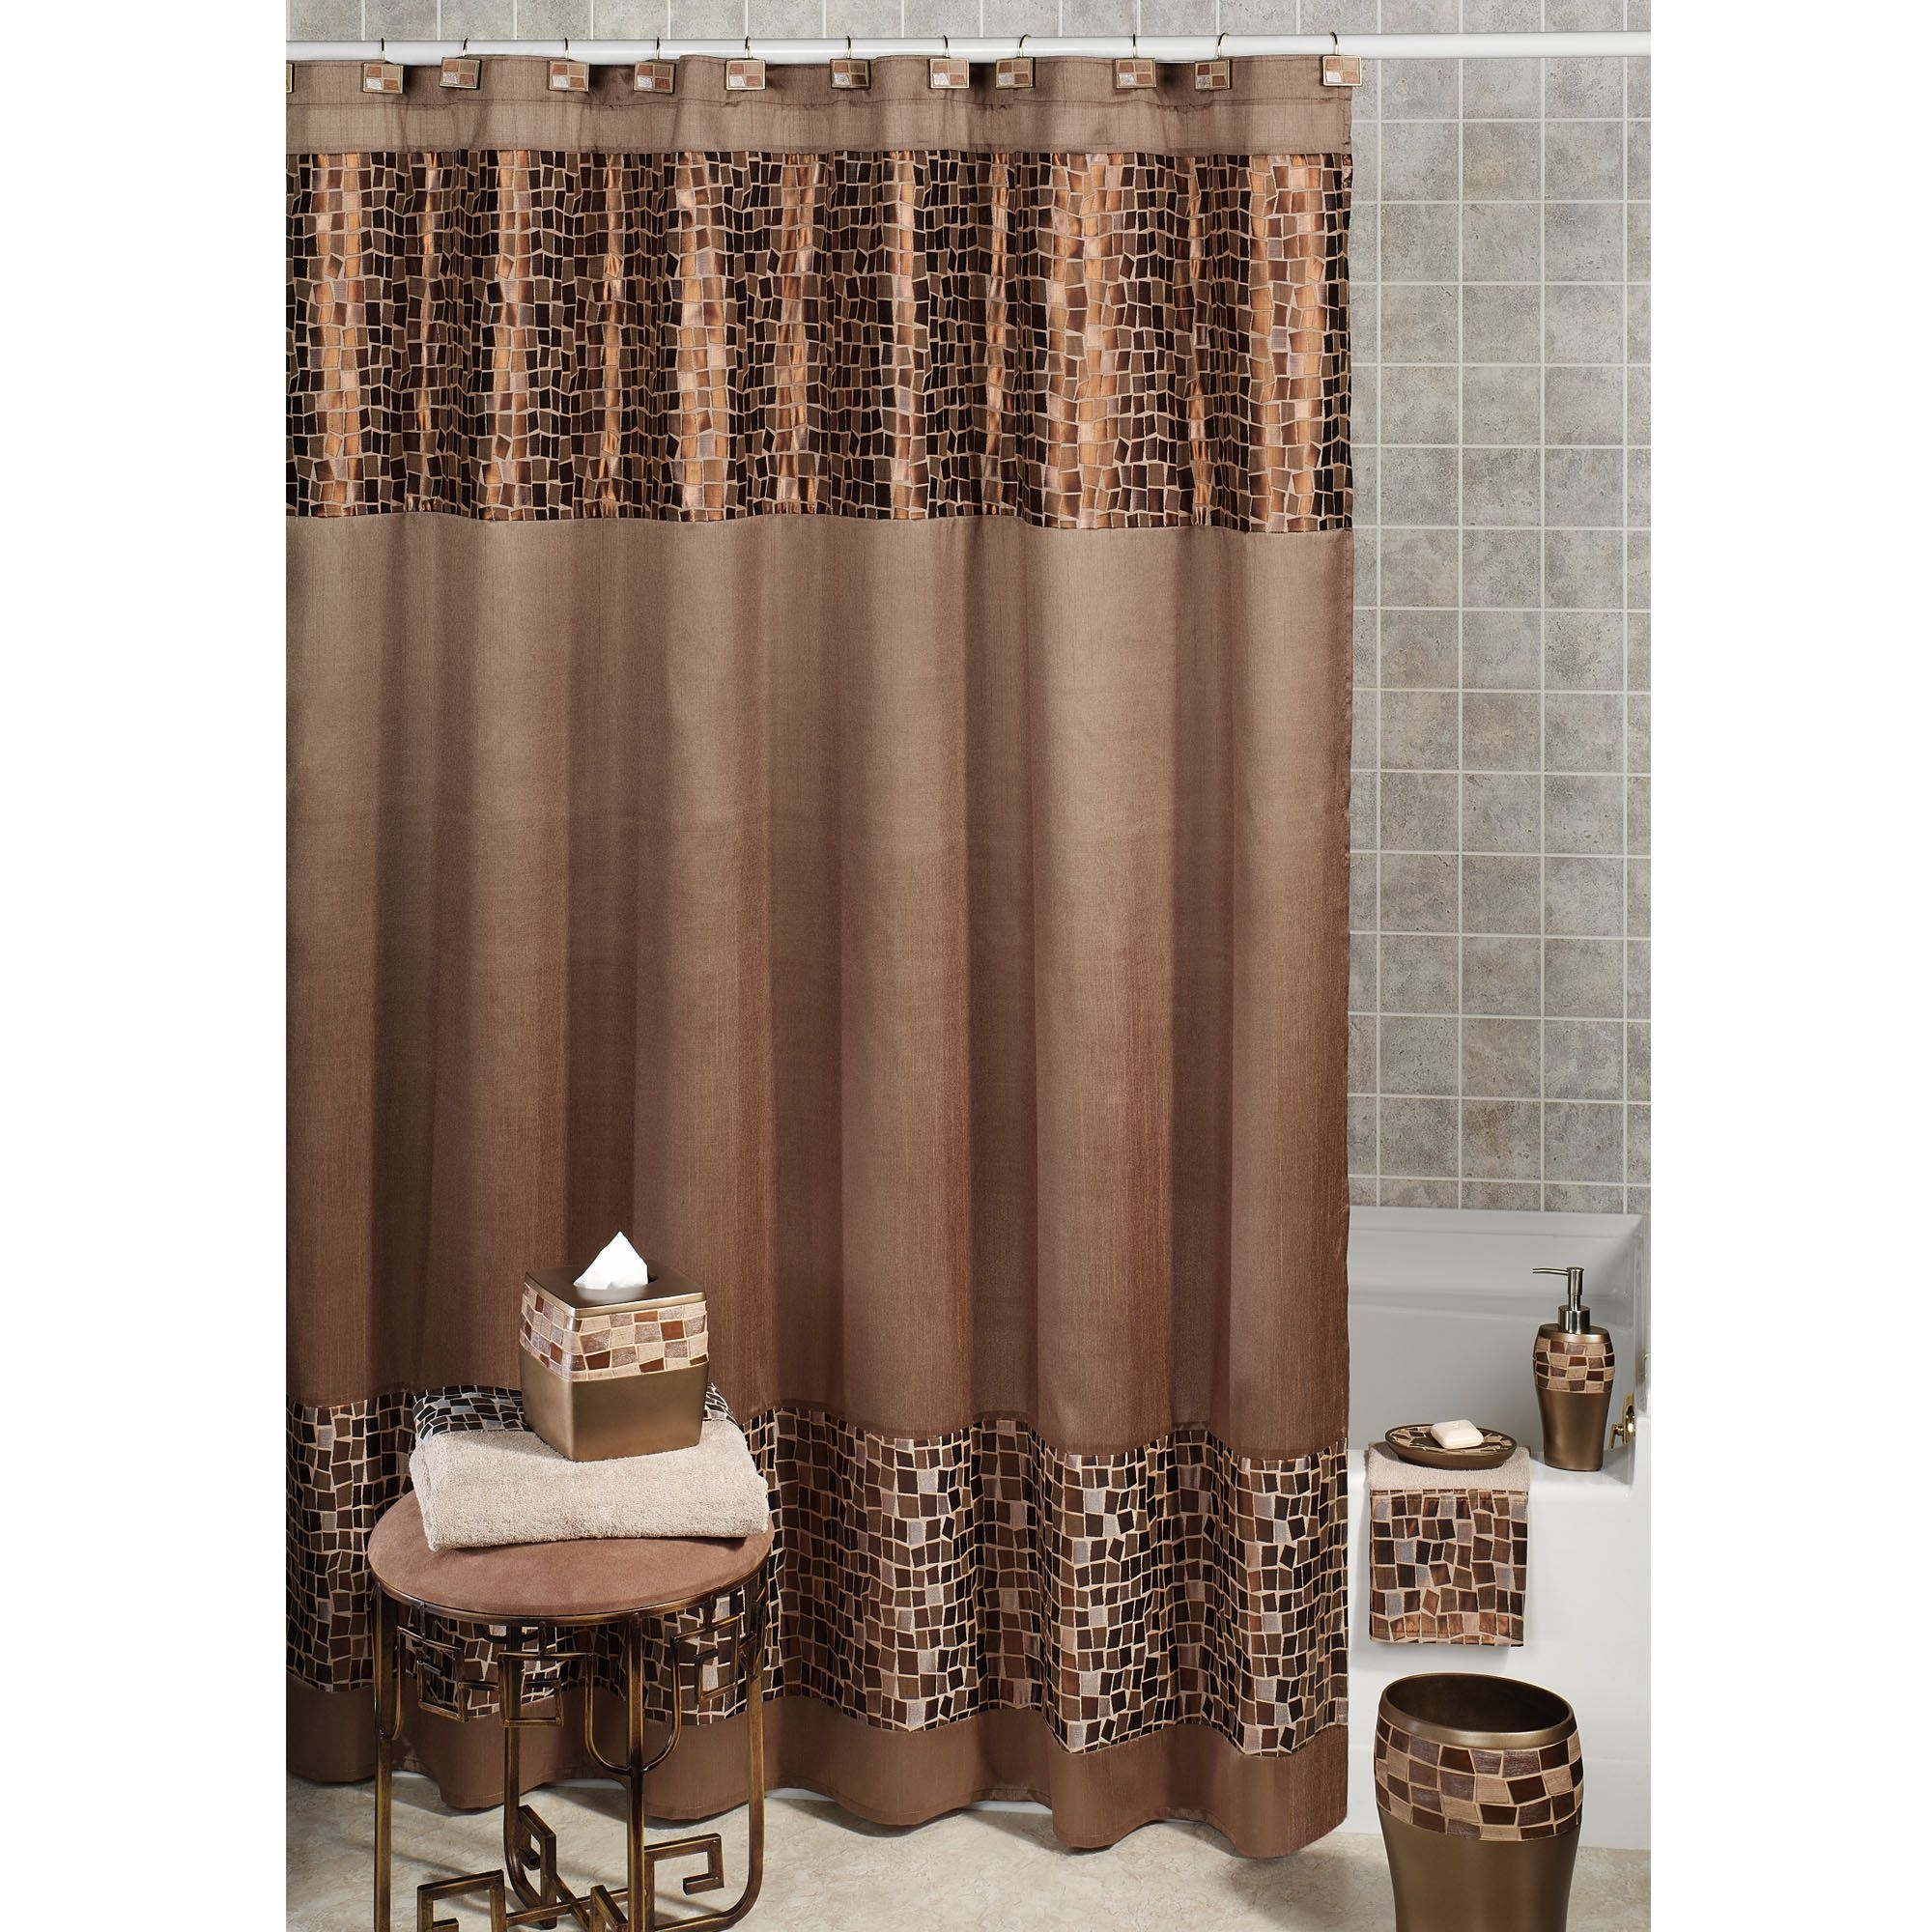 Bathroom Shower Sets Luxury Bathroom Shower Curtain Sets Shower Curtains Ideas